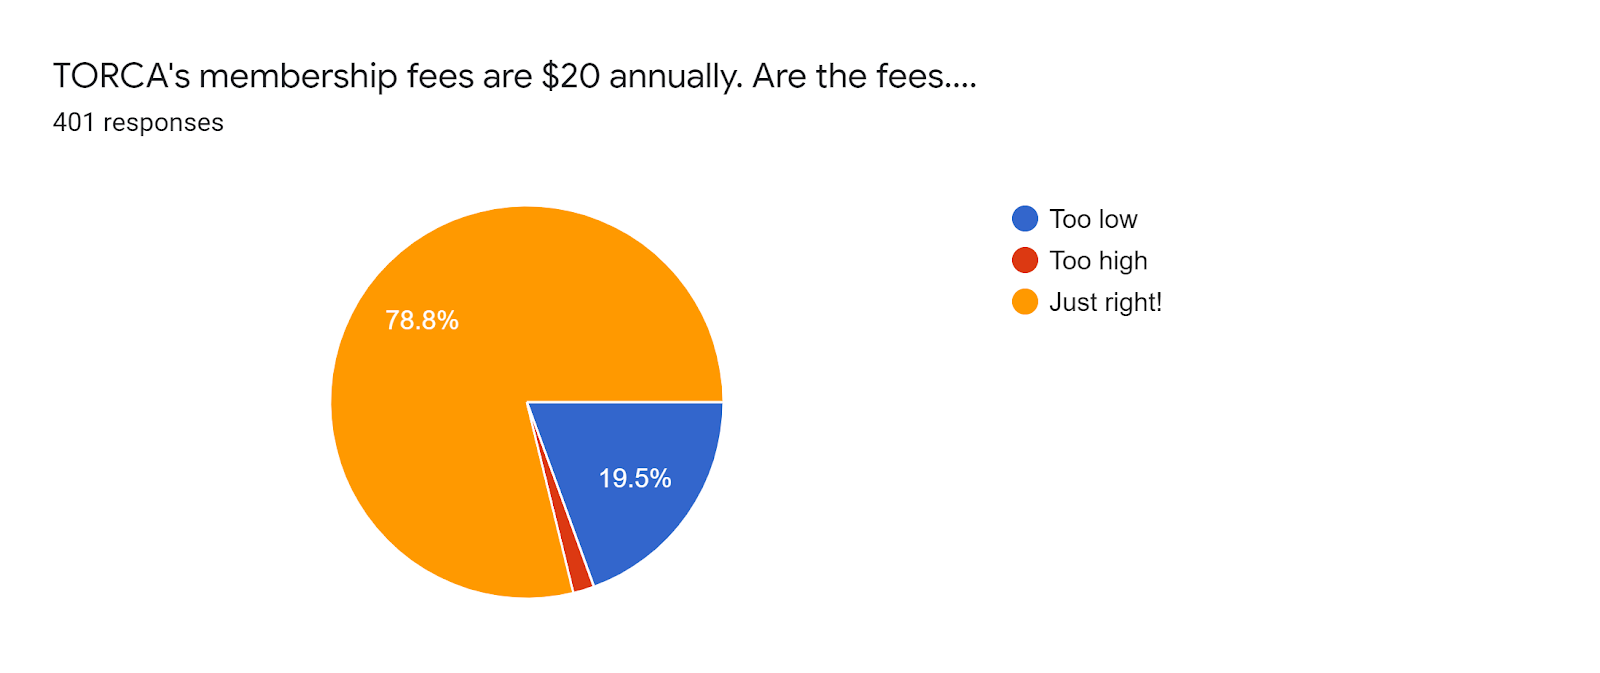 Forms response chart. Question title: TORCA's membership fees are $20 annually. Are the fees..... Number of responses: 401 responses.